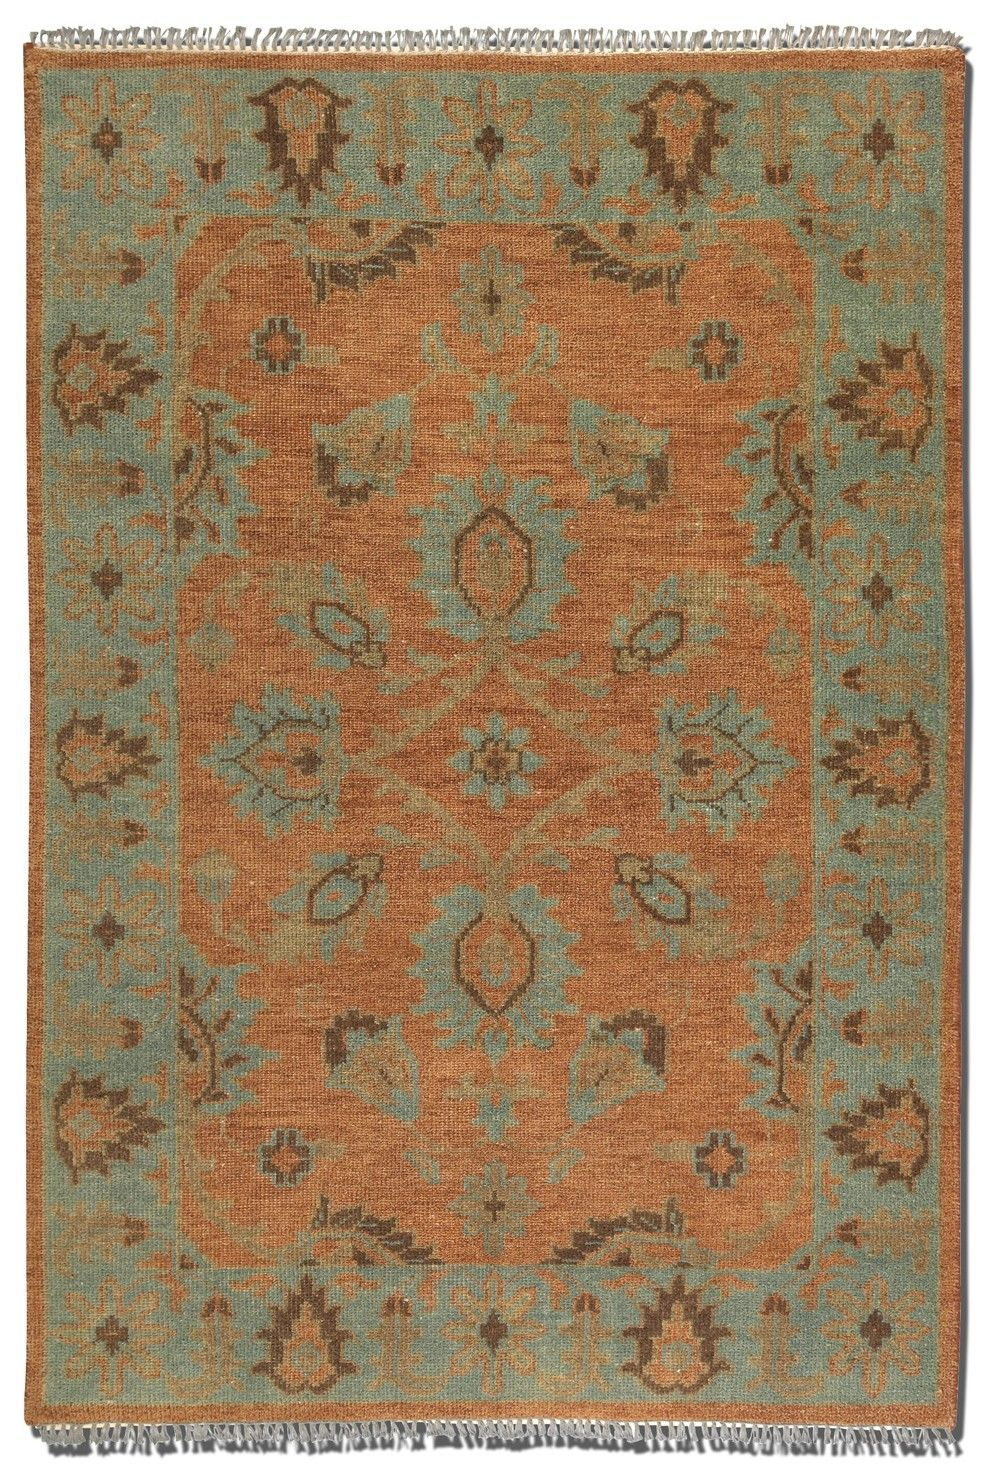 Uttermost Akbar Rug S Hand Knotted Rugs Combine Premium Quality Materials Unique High